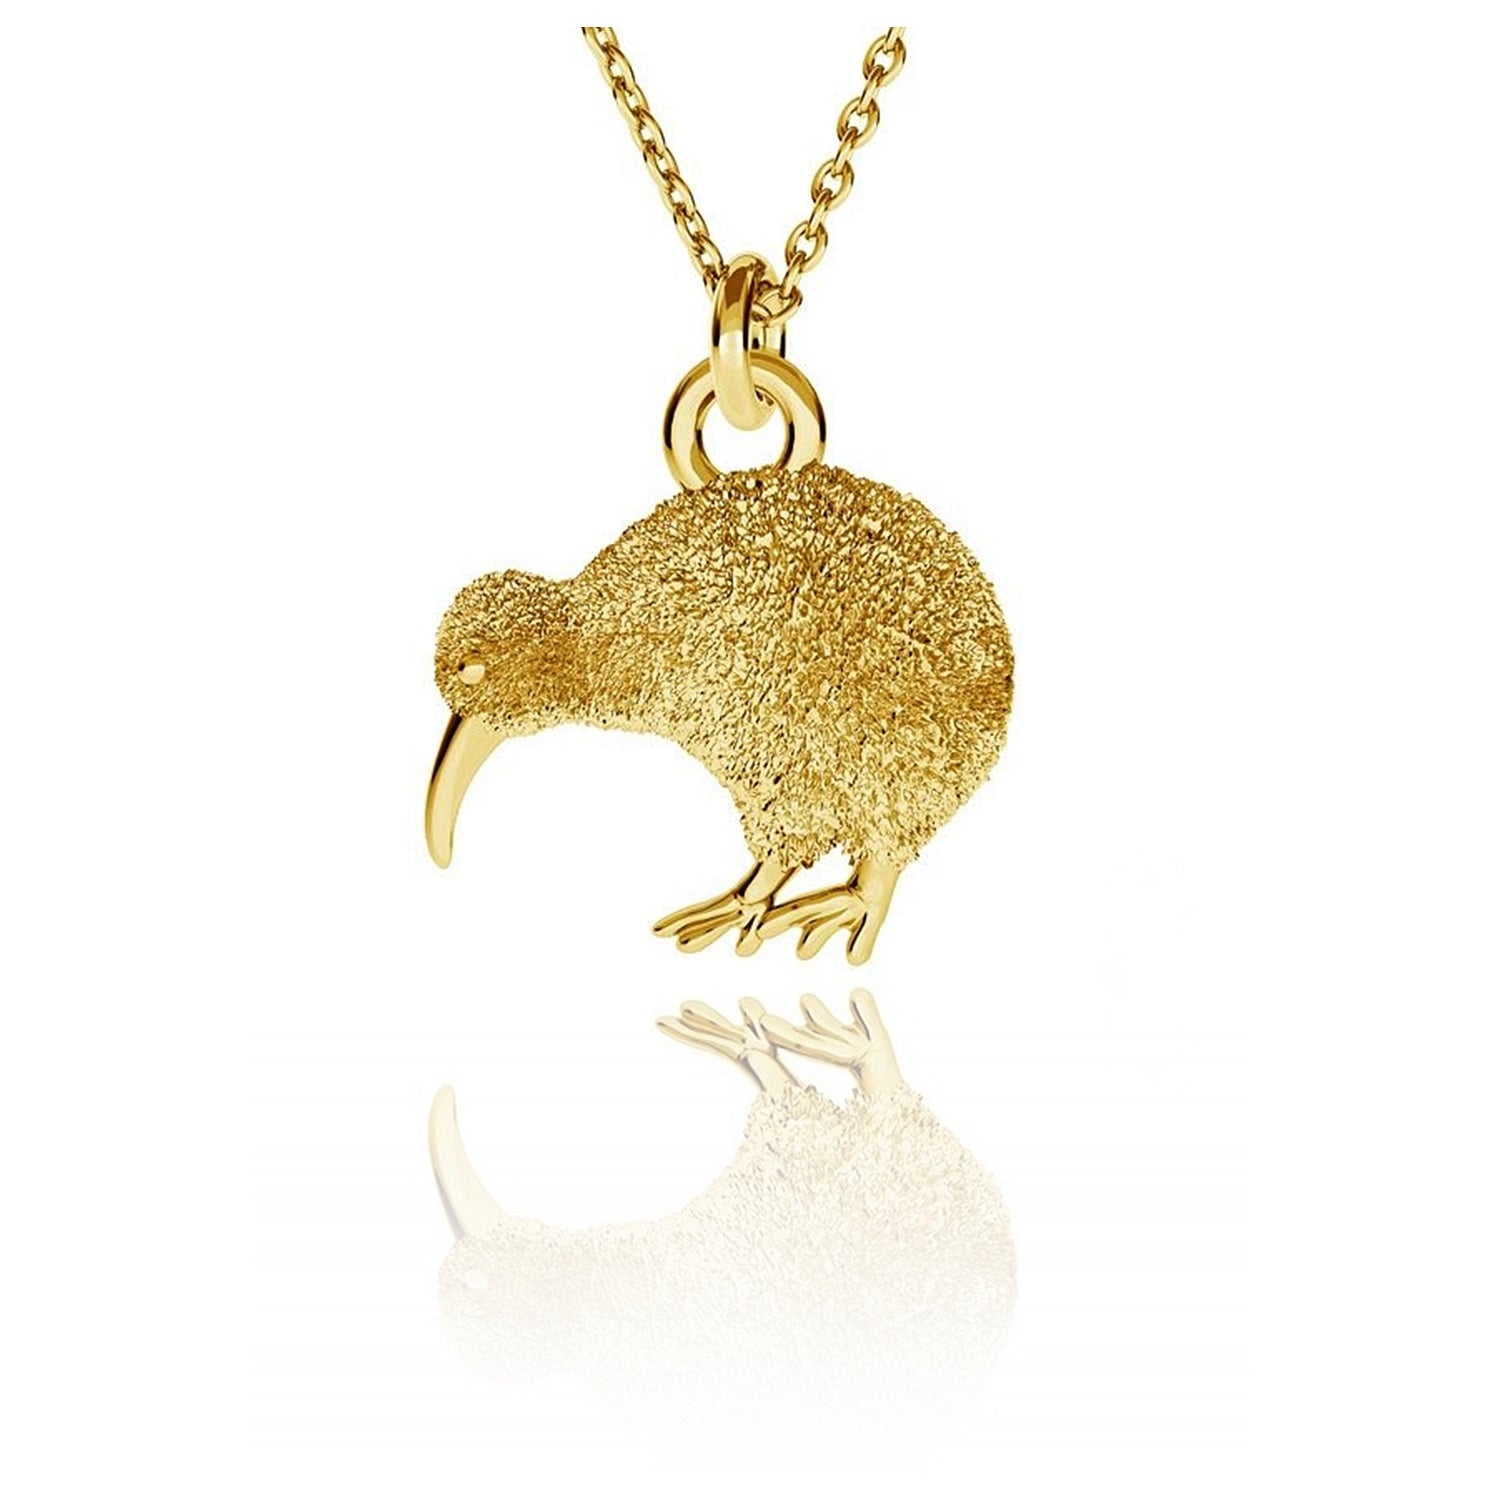 COLLAR KIWI BIRD - Gold